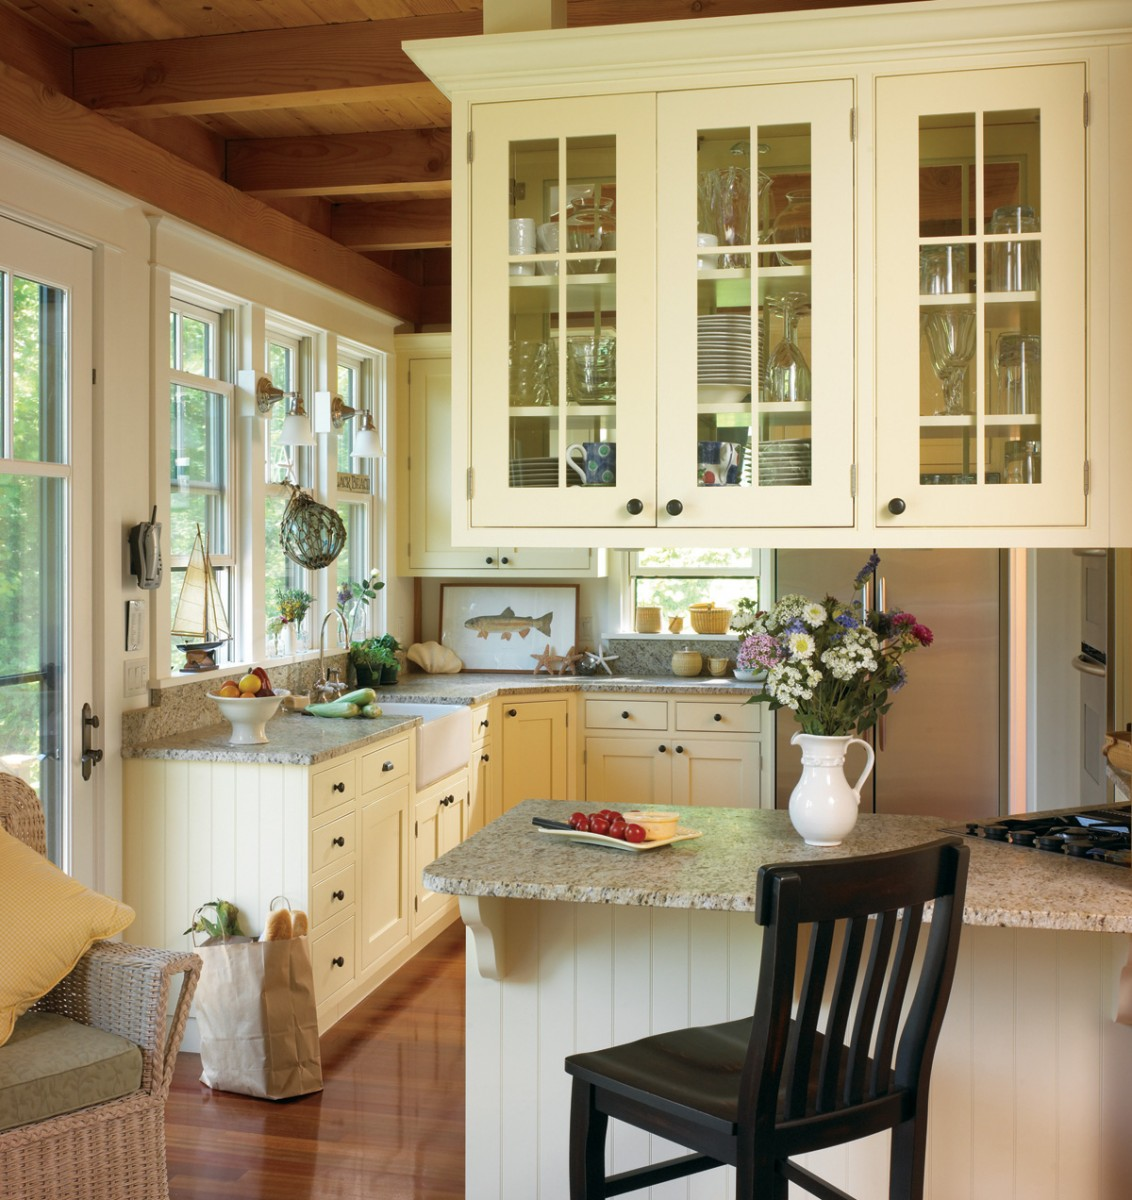 Country Galley Kitchen Designs Country Galley Kitchen Designs  Interior & Exterior Doors